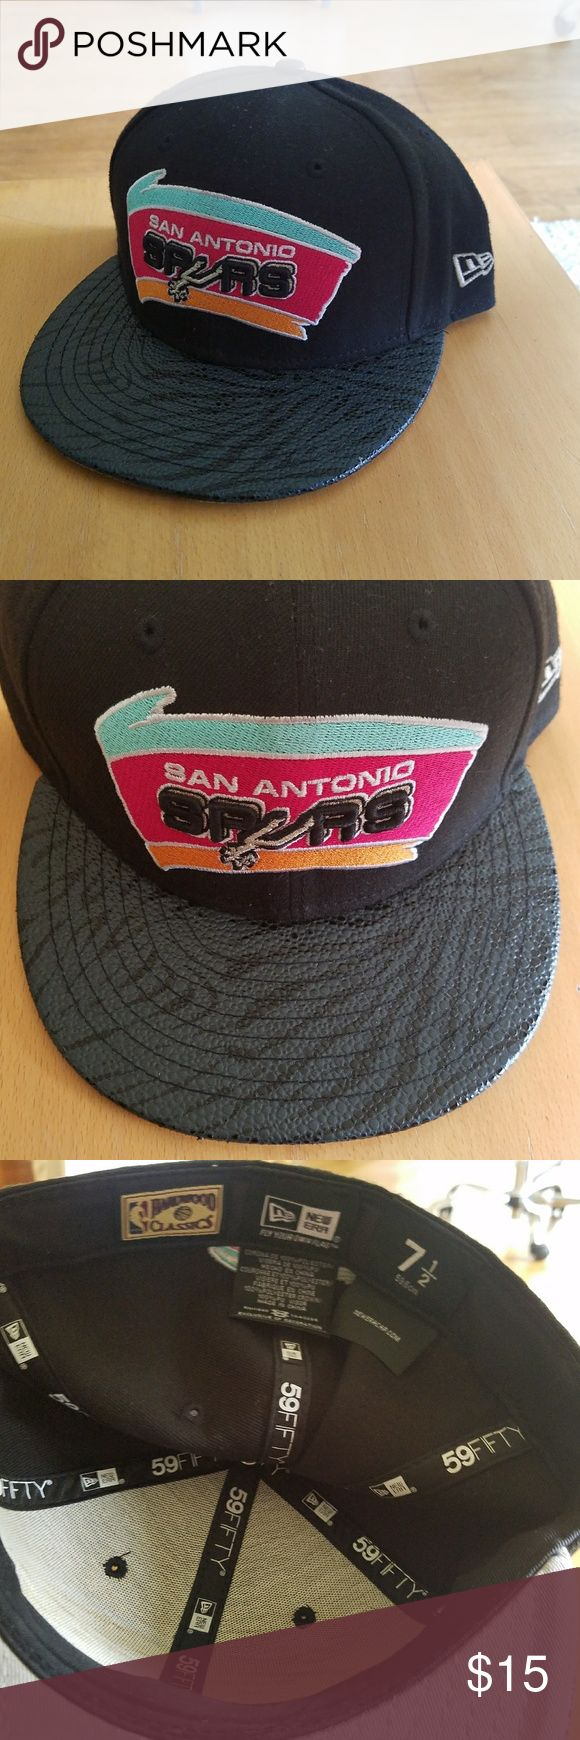 Spurs hat San Antonio Spurs hat with design print on the front. Fitted hat. Size 7 1/2  Please feel free to make a resonable offer! New Era Accessories Hats